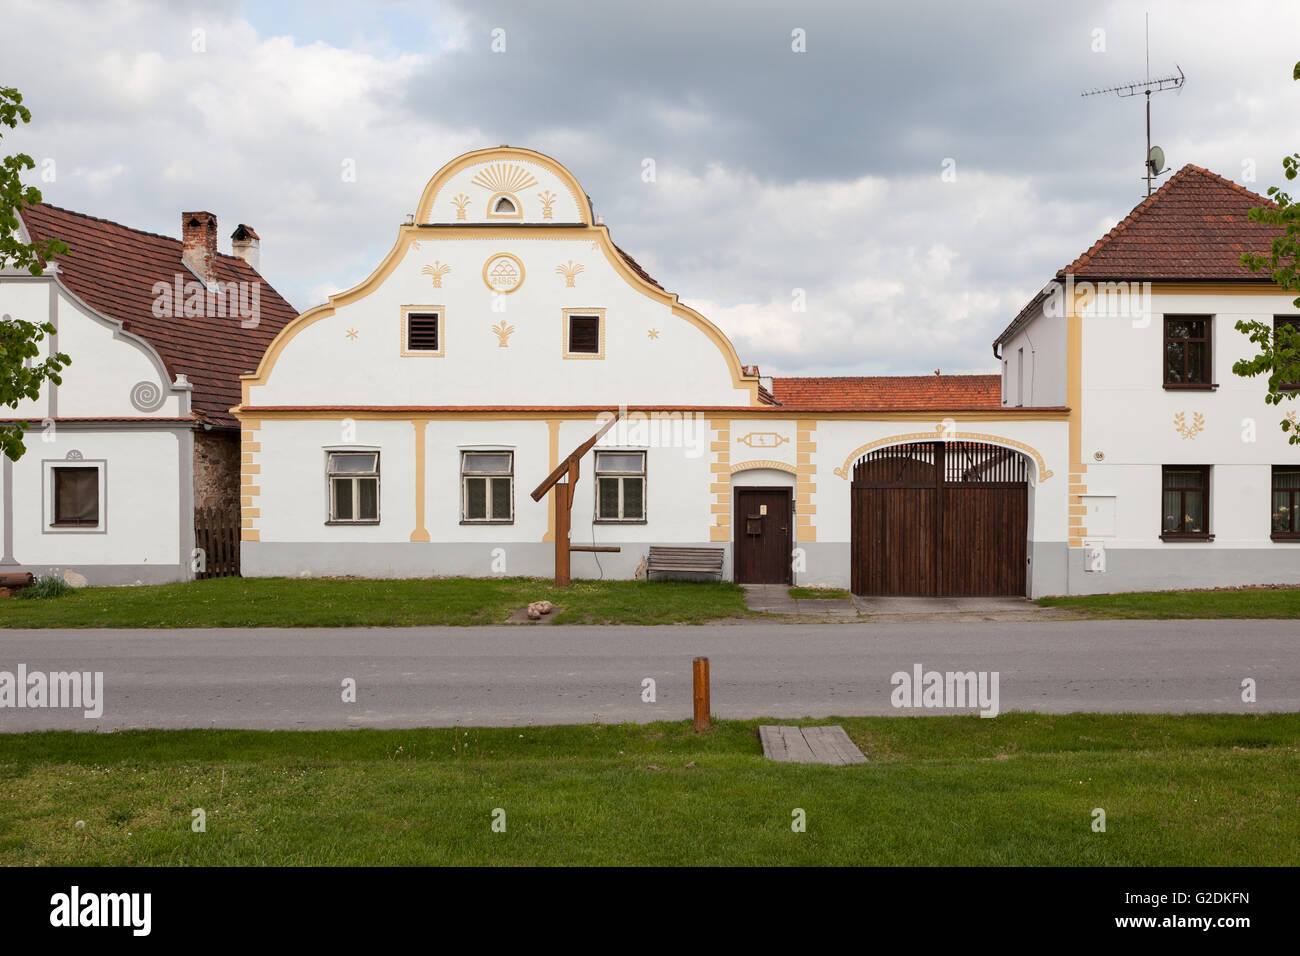 Facades of houses at historical village of Holasovice - Stock Image